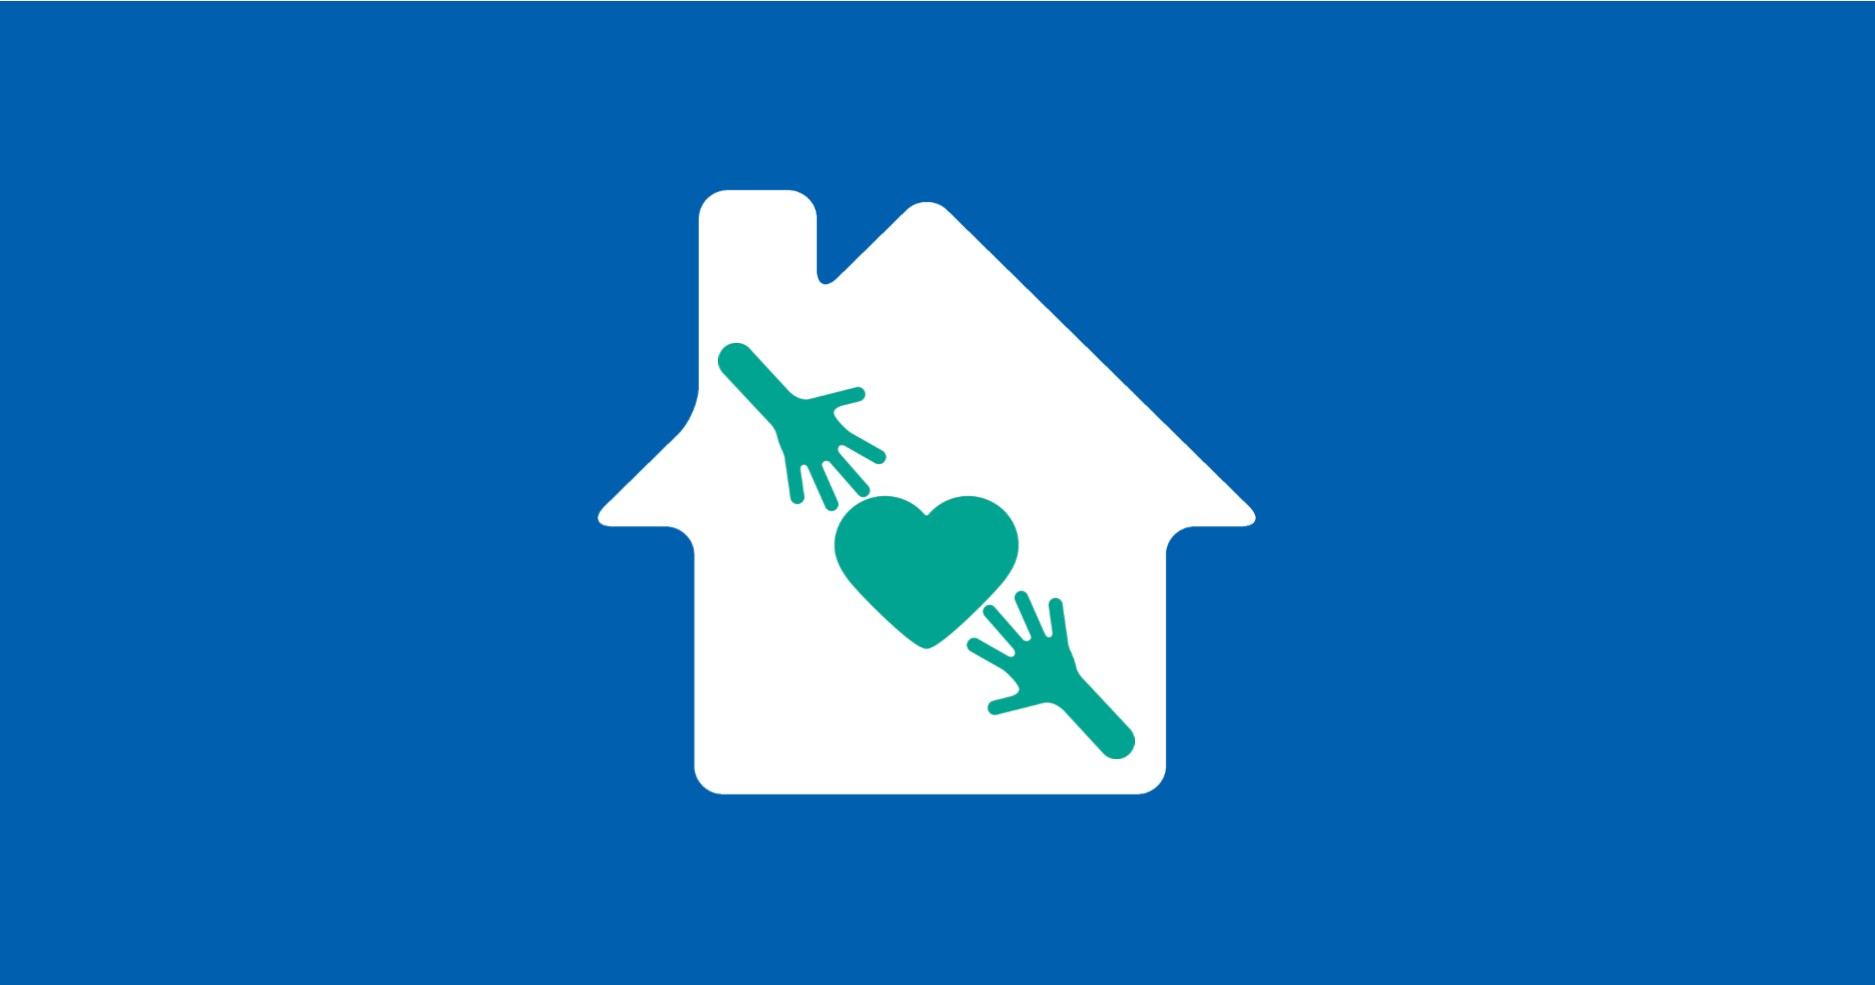 Ymca supportive housing